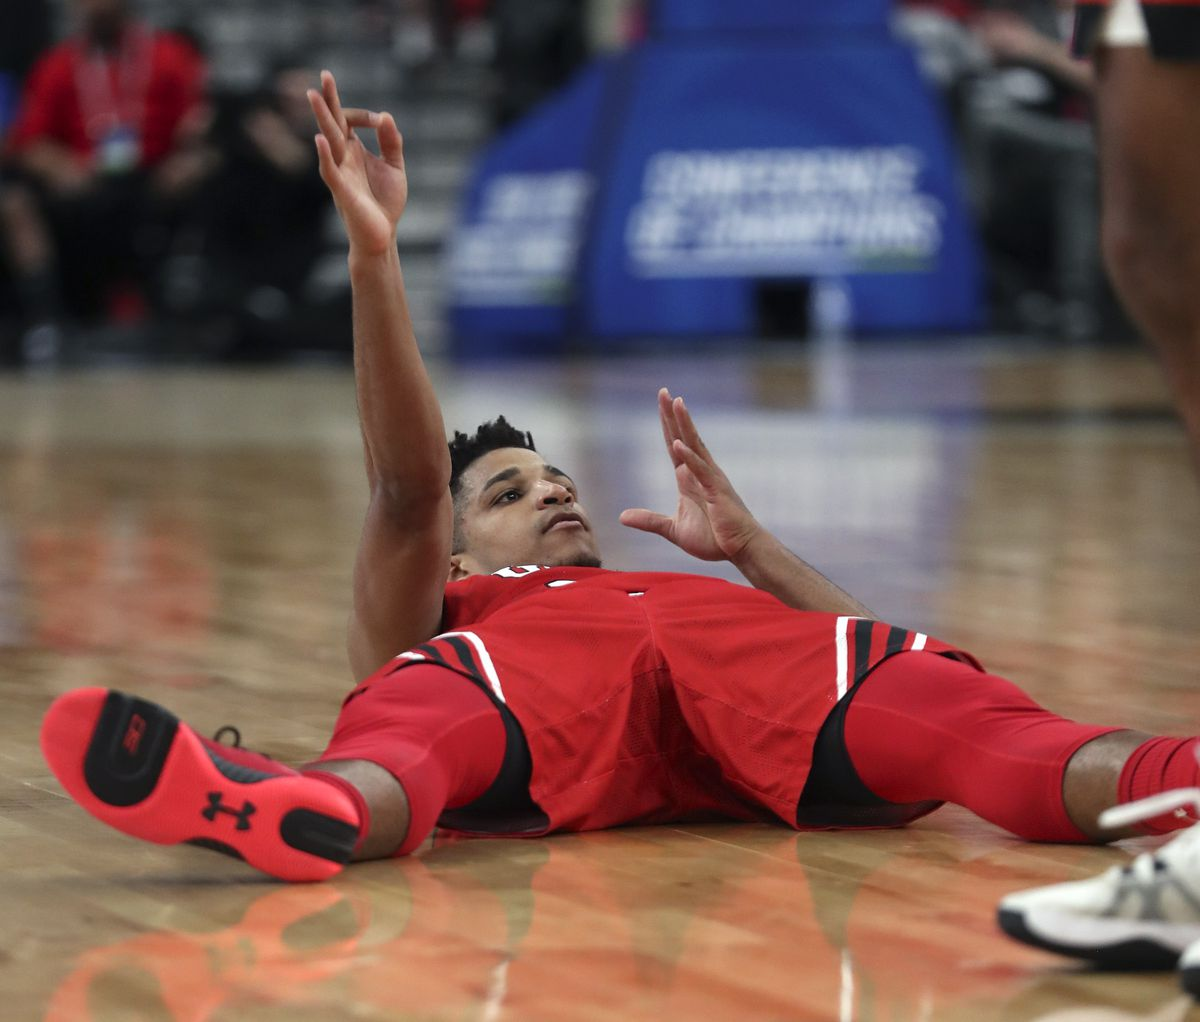 After being fouled, Utah Utes guard Alfonso Plummer (25) signals a 3-pointer from his back as the Utes play the Oregon State Beavers during the first round of the Pac-12 men's basketball tournament at T-Mobile Arena in Las Vegas on Wednesday, March 11, 2020.